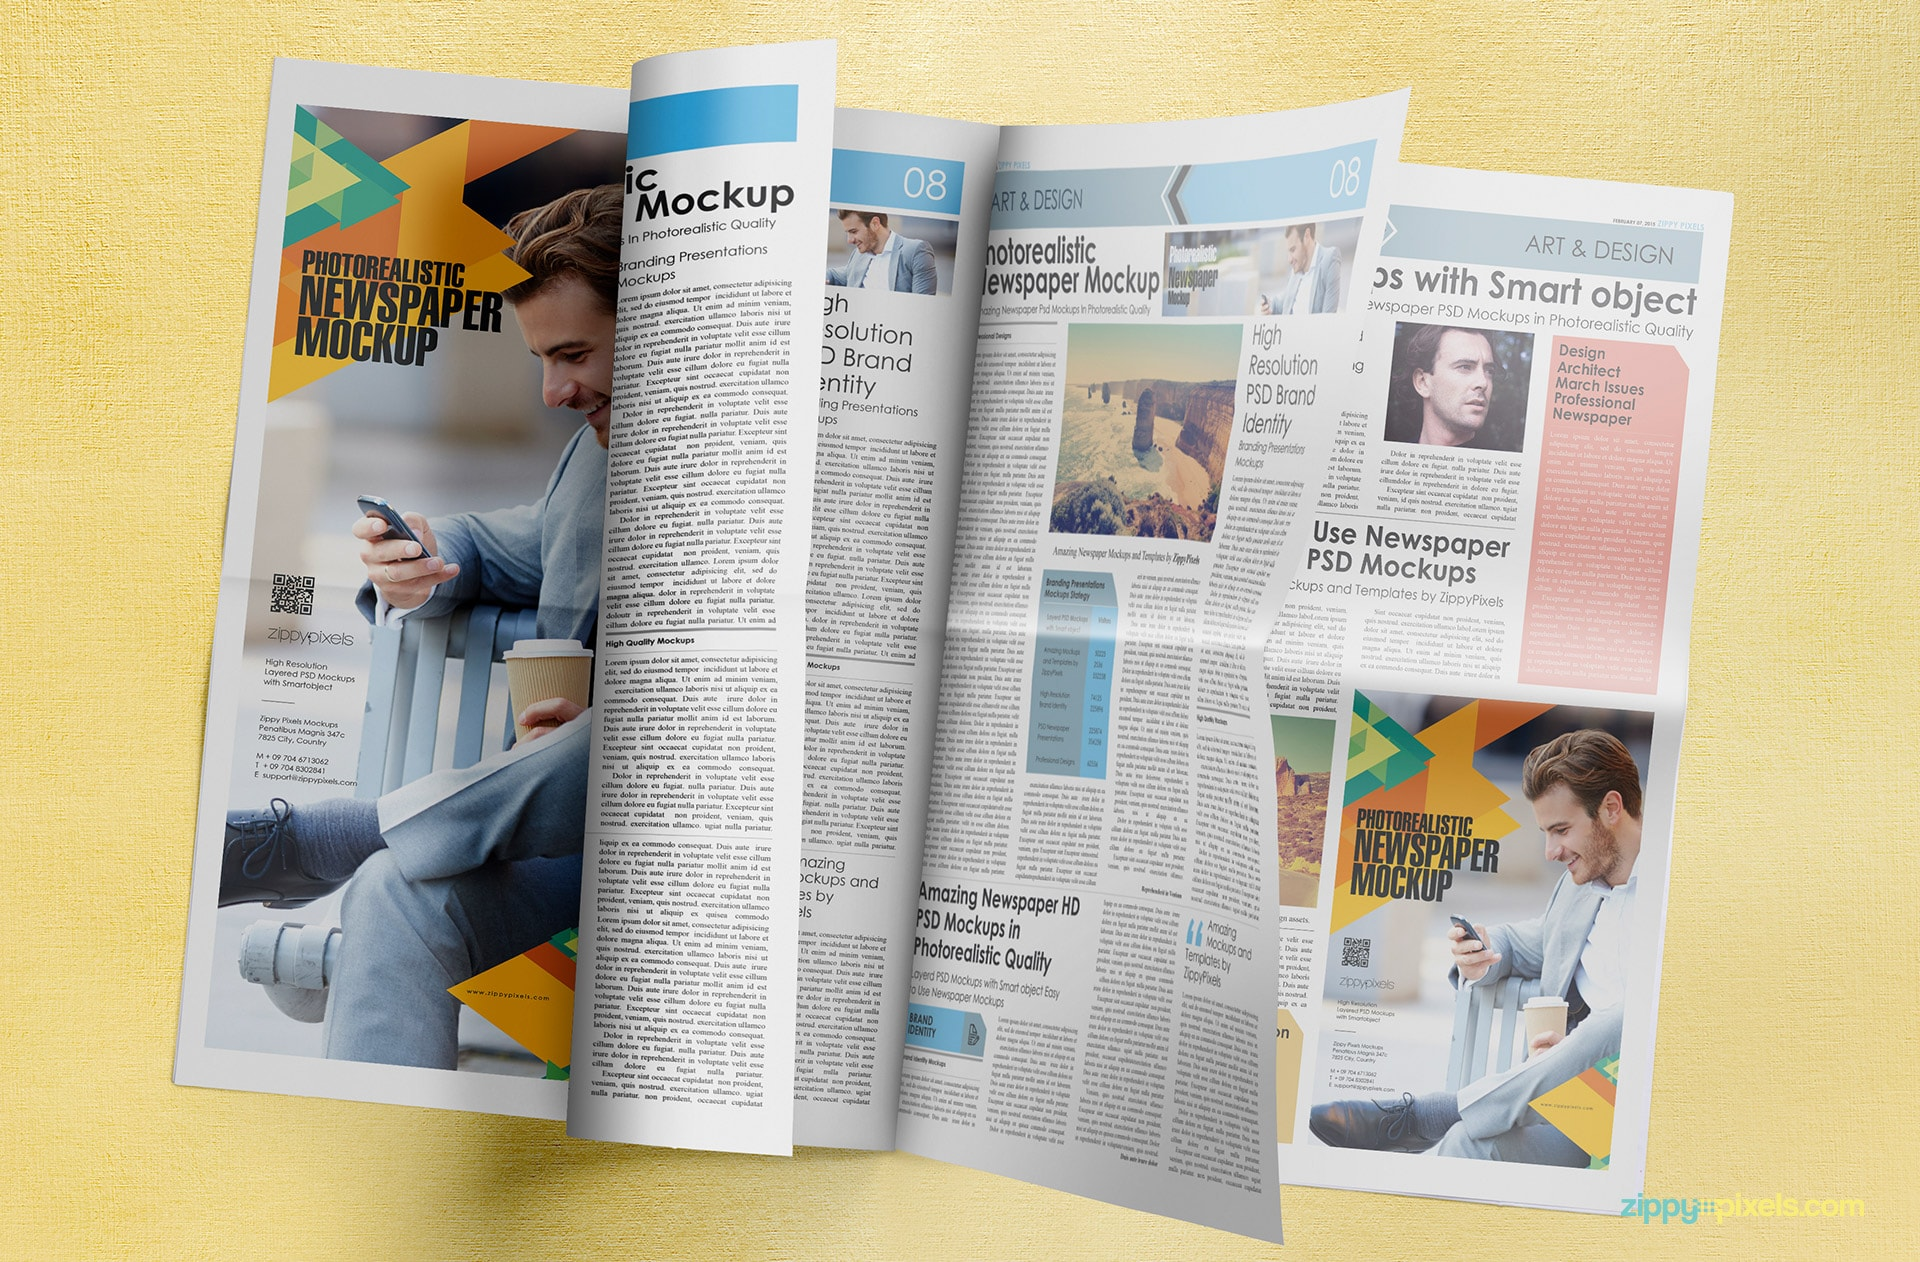 Amazing mockup of turning newspaper pages with large ad & full page ad